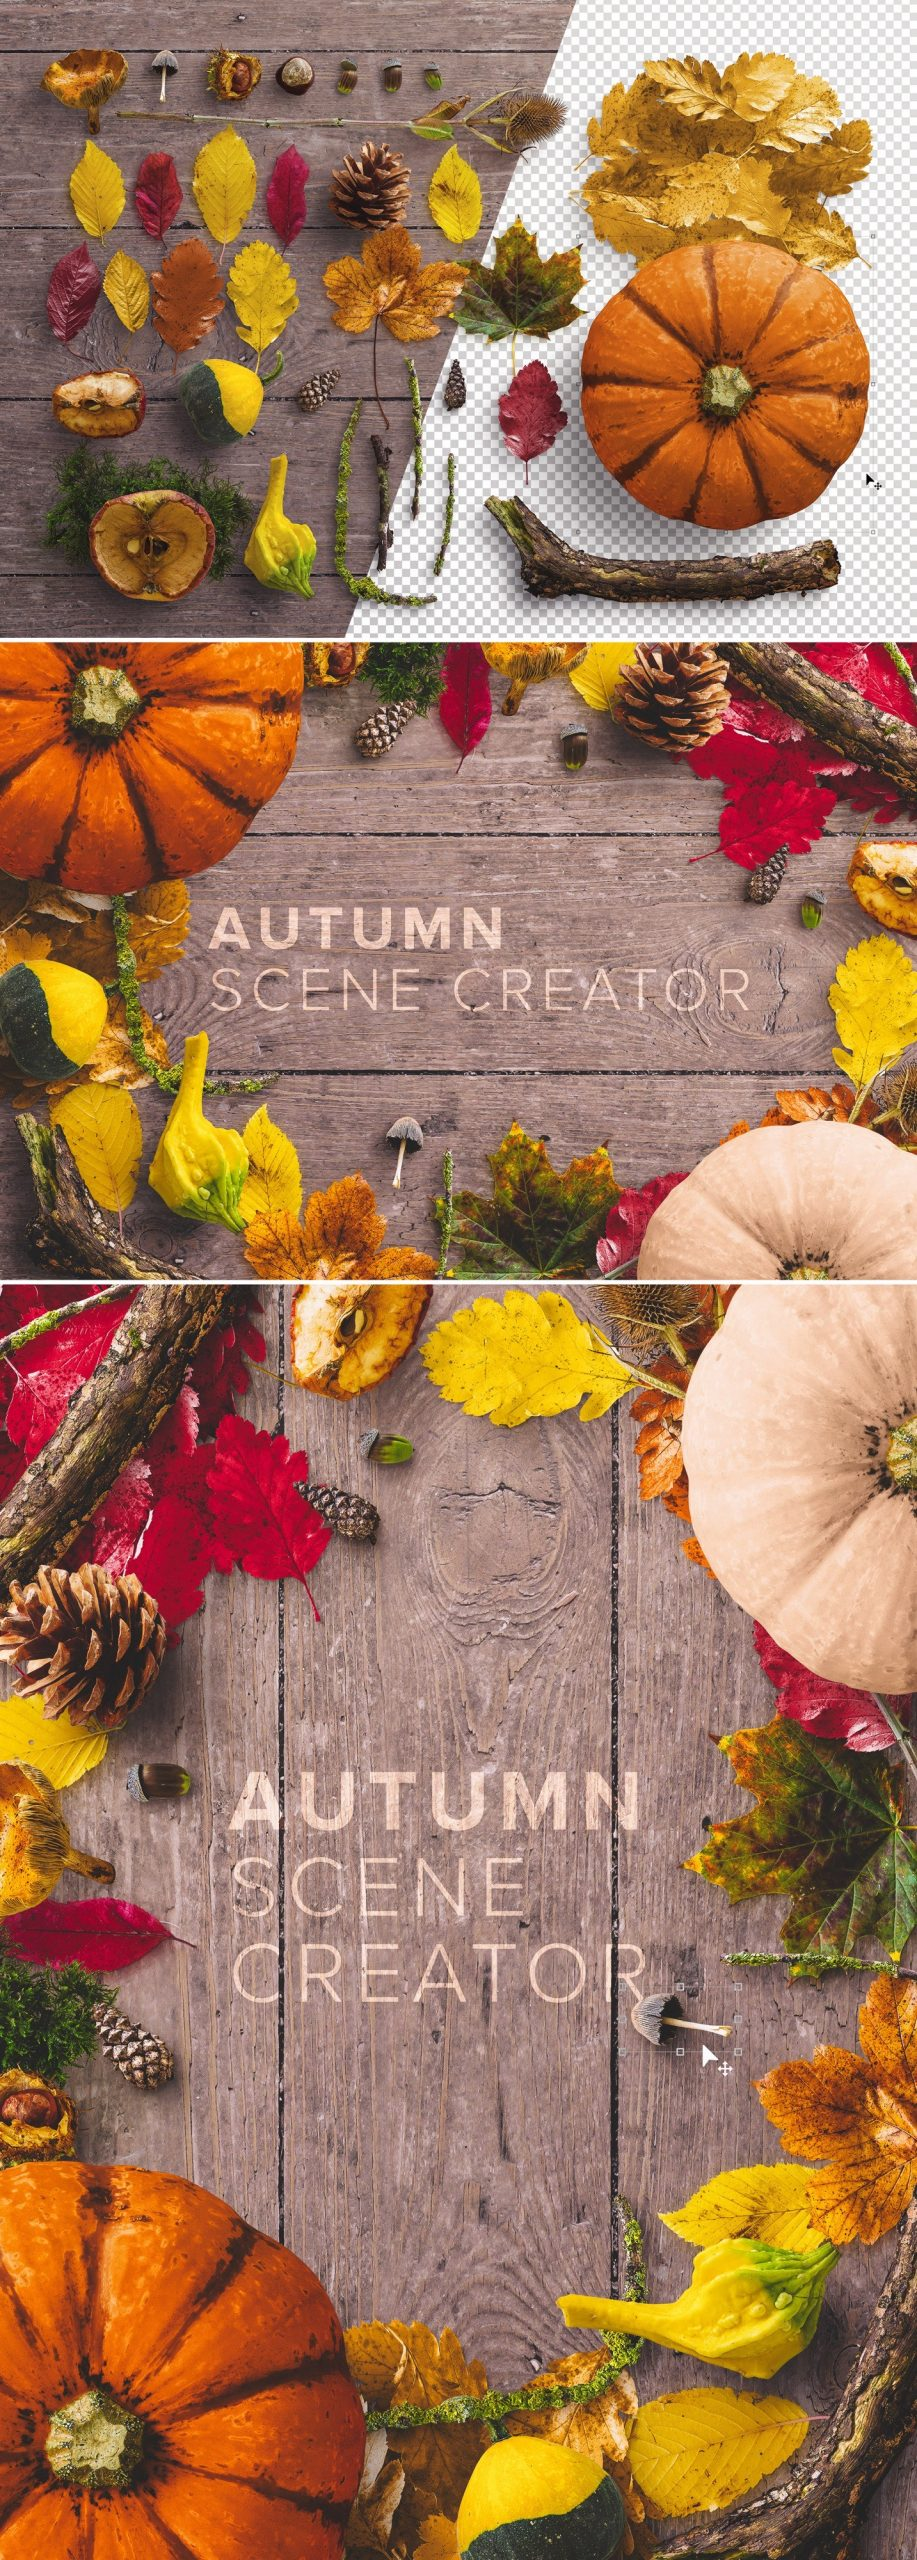 fall scene creator preview1 1 scaled